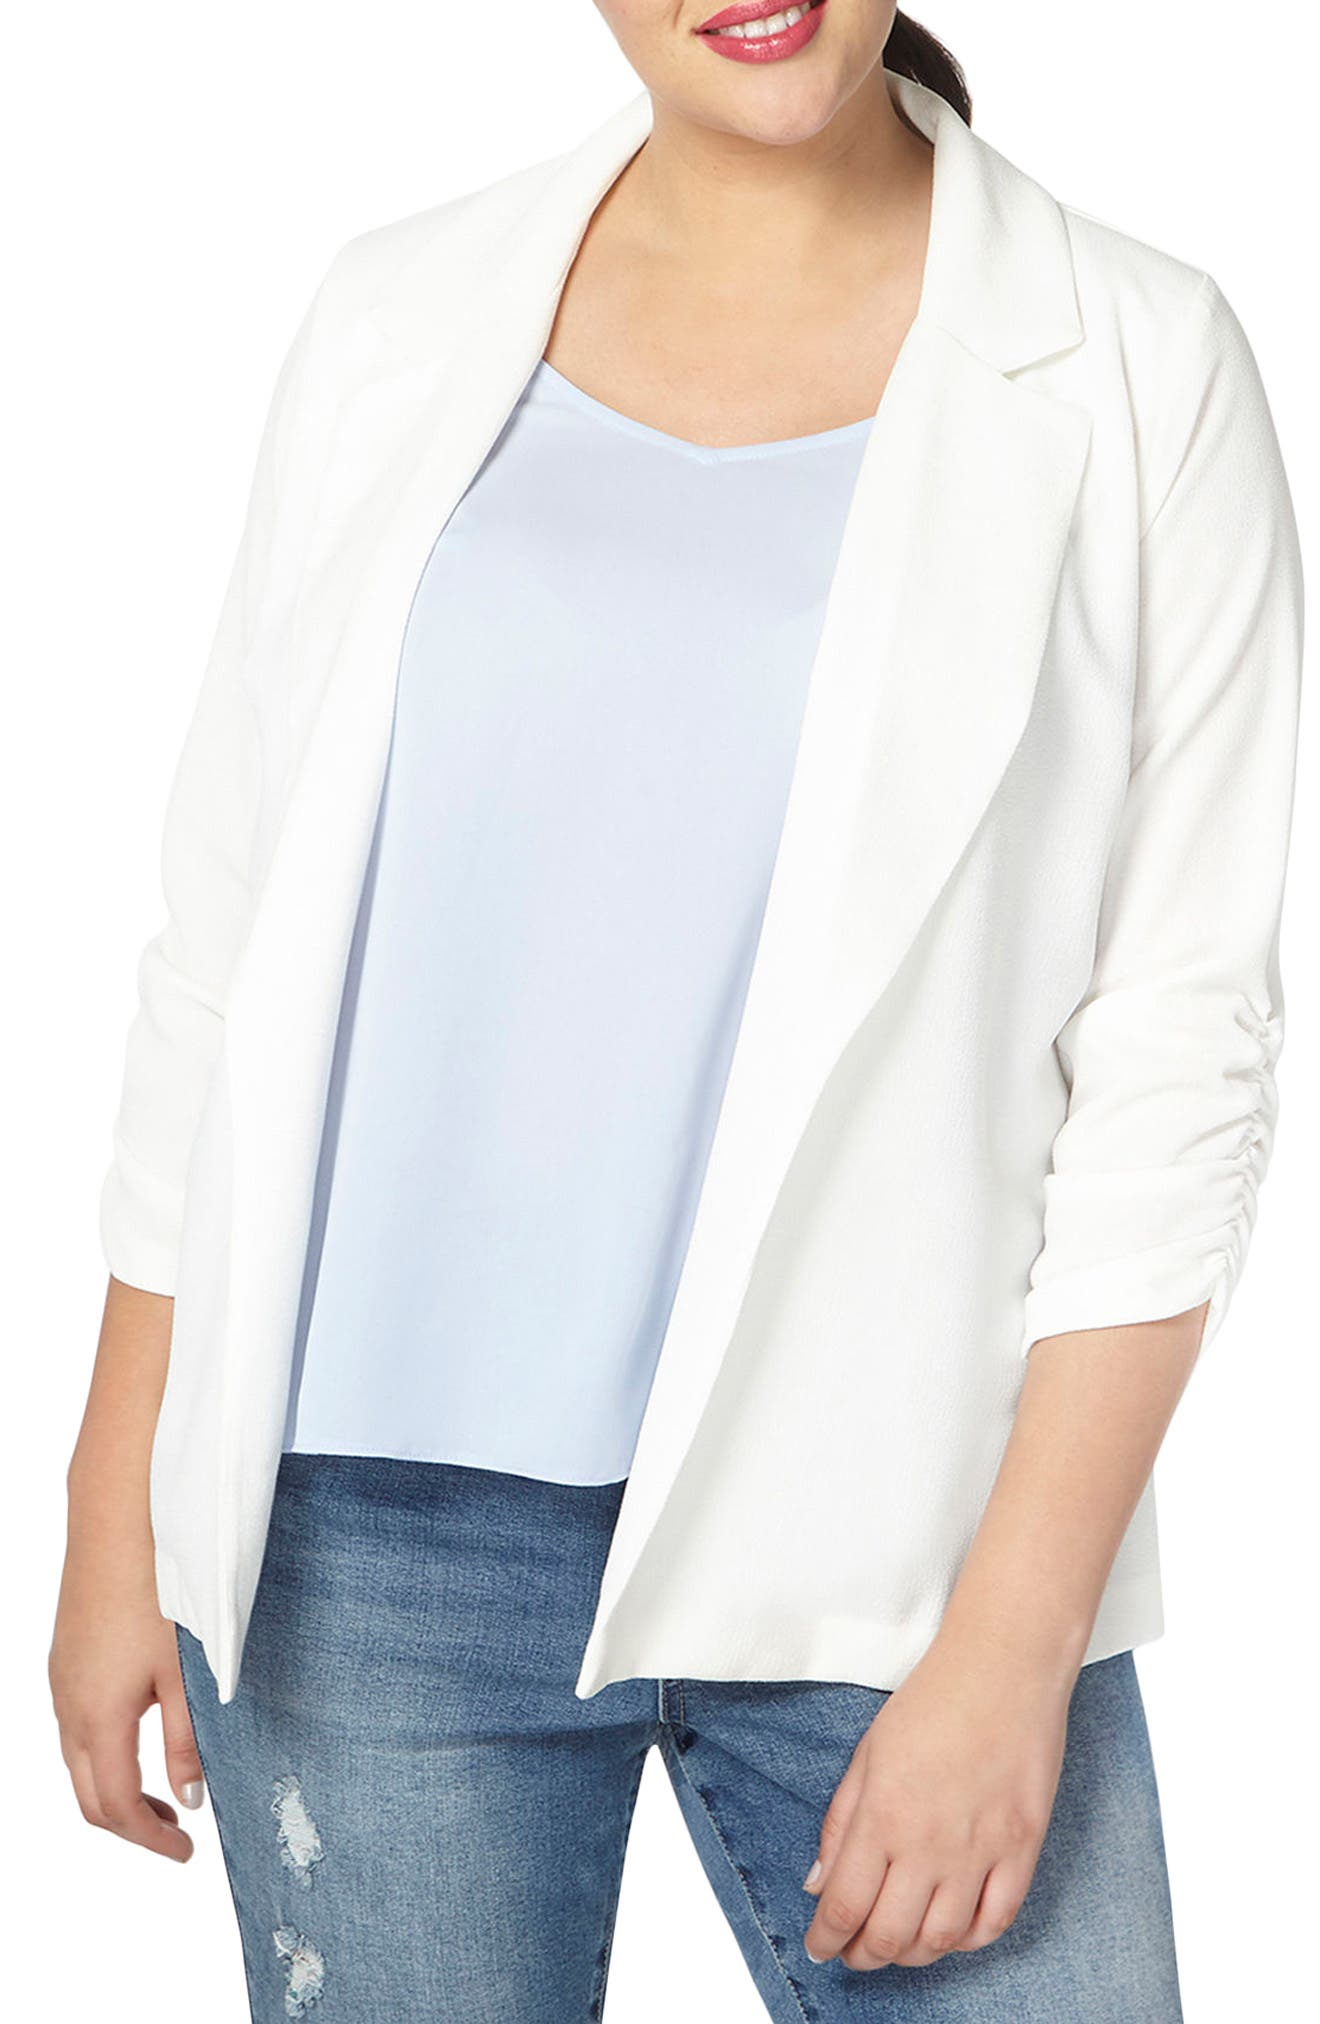 Alternate Image 1 Selected - Evans Crepe Blazer (Plus Size)